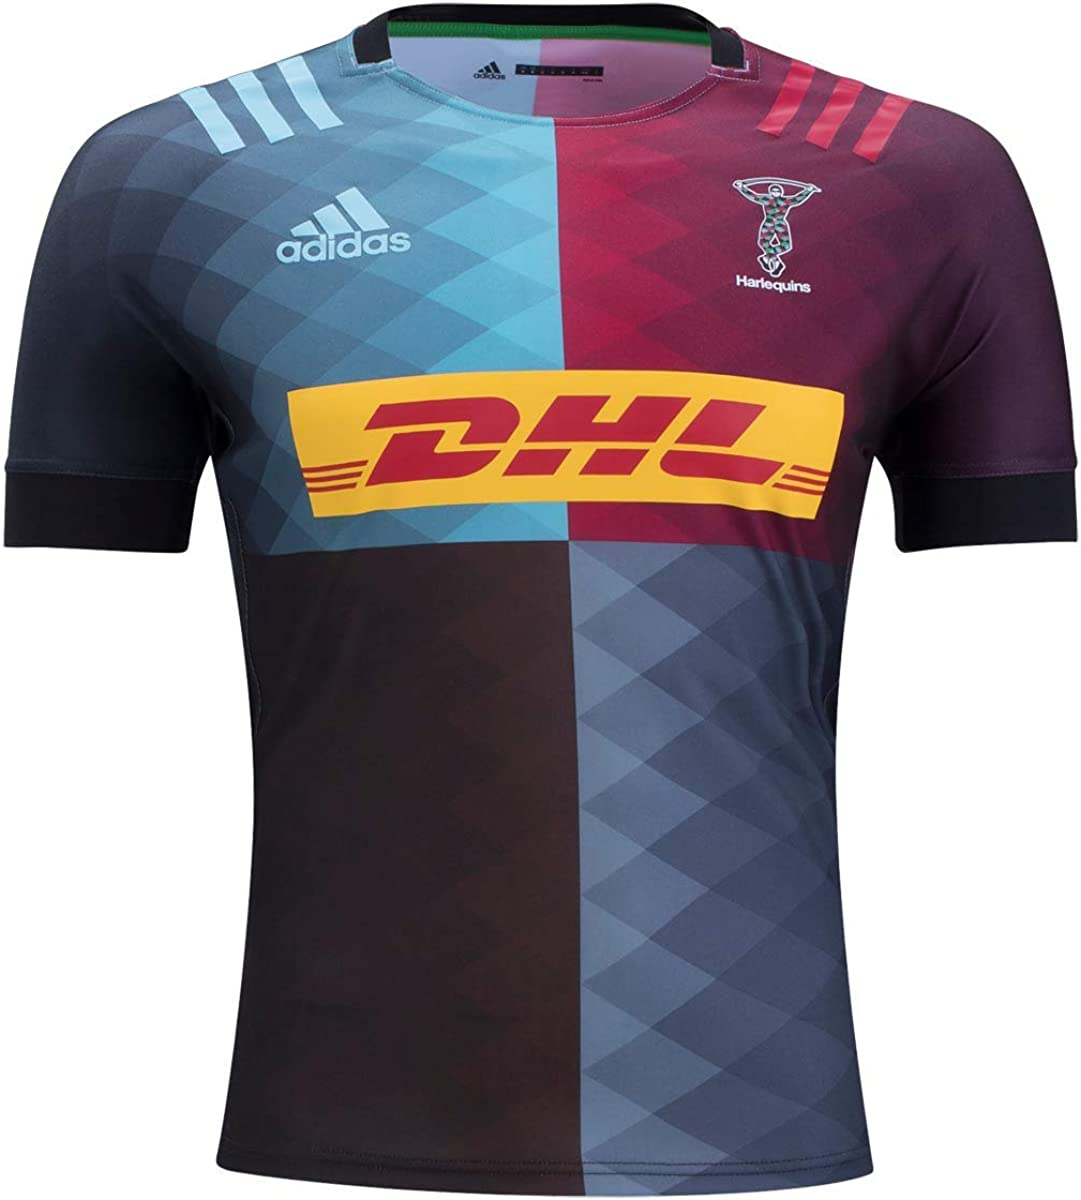 adidas Harlequins Home Sales for sale security Rugby Jersey